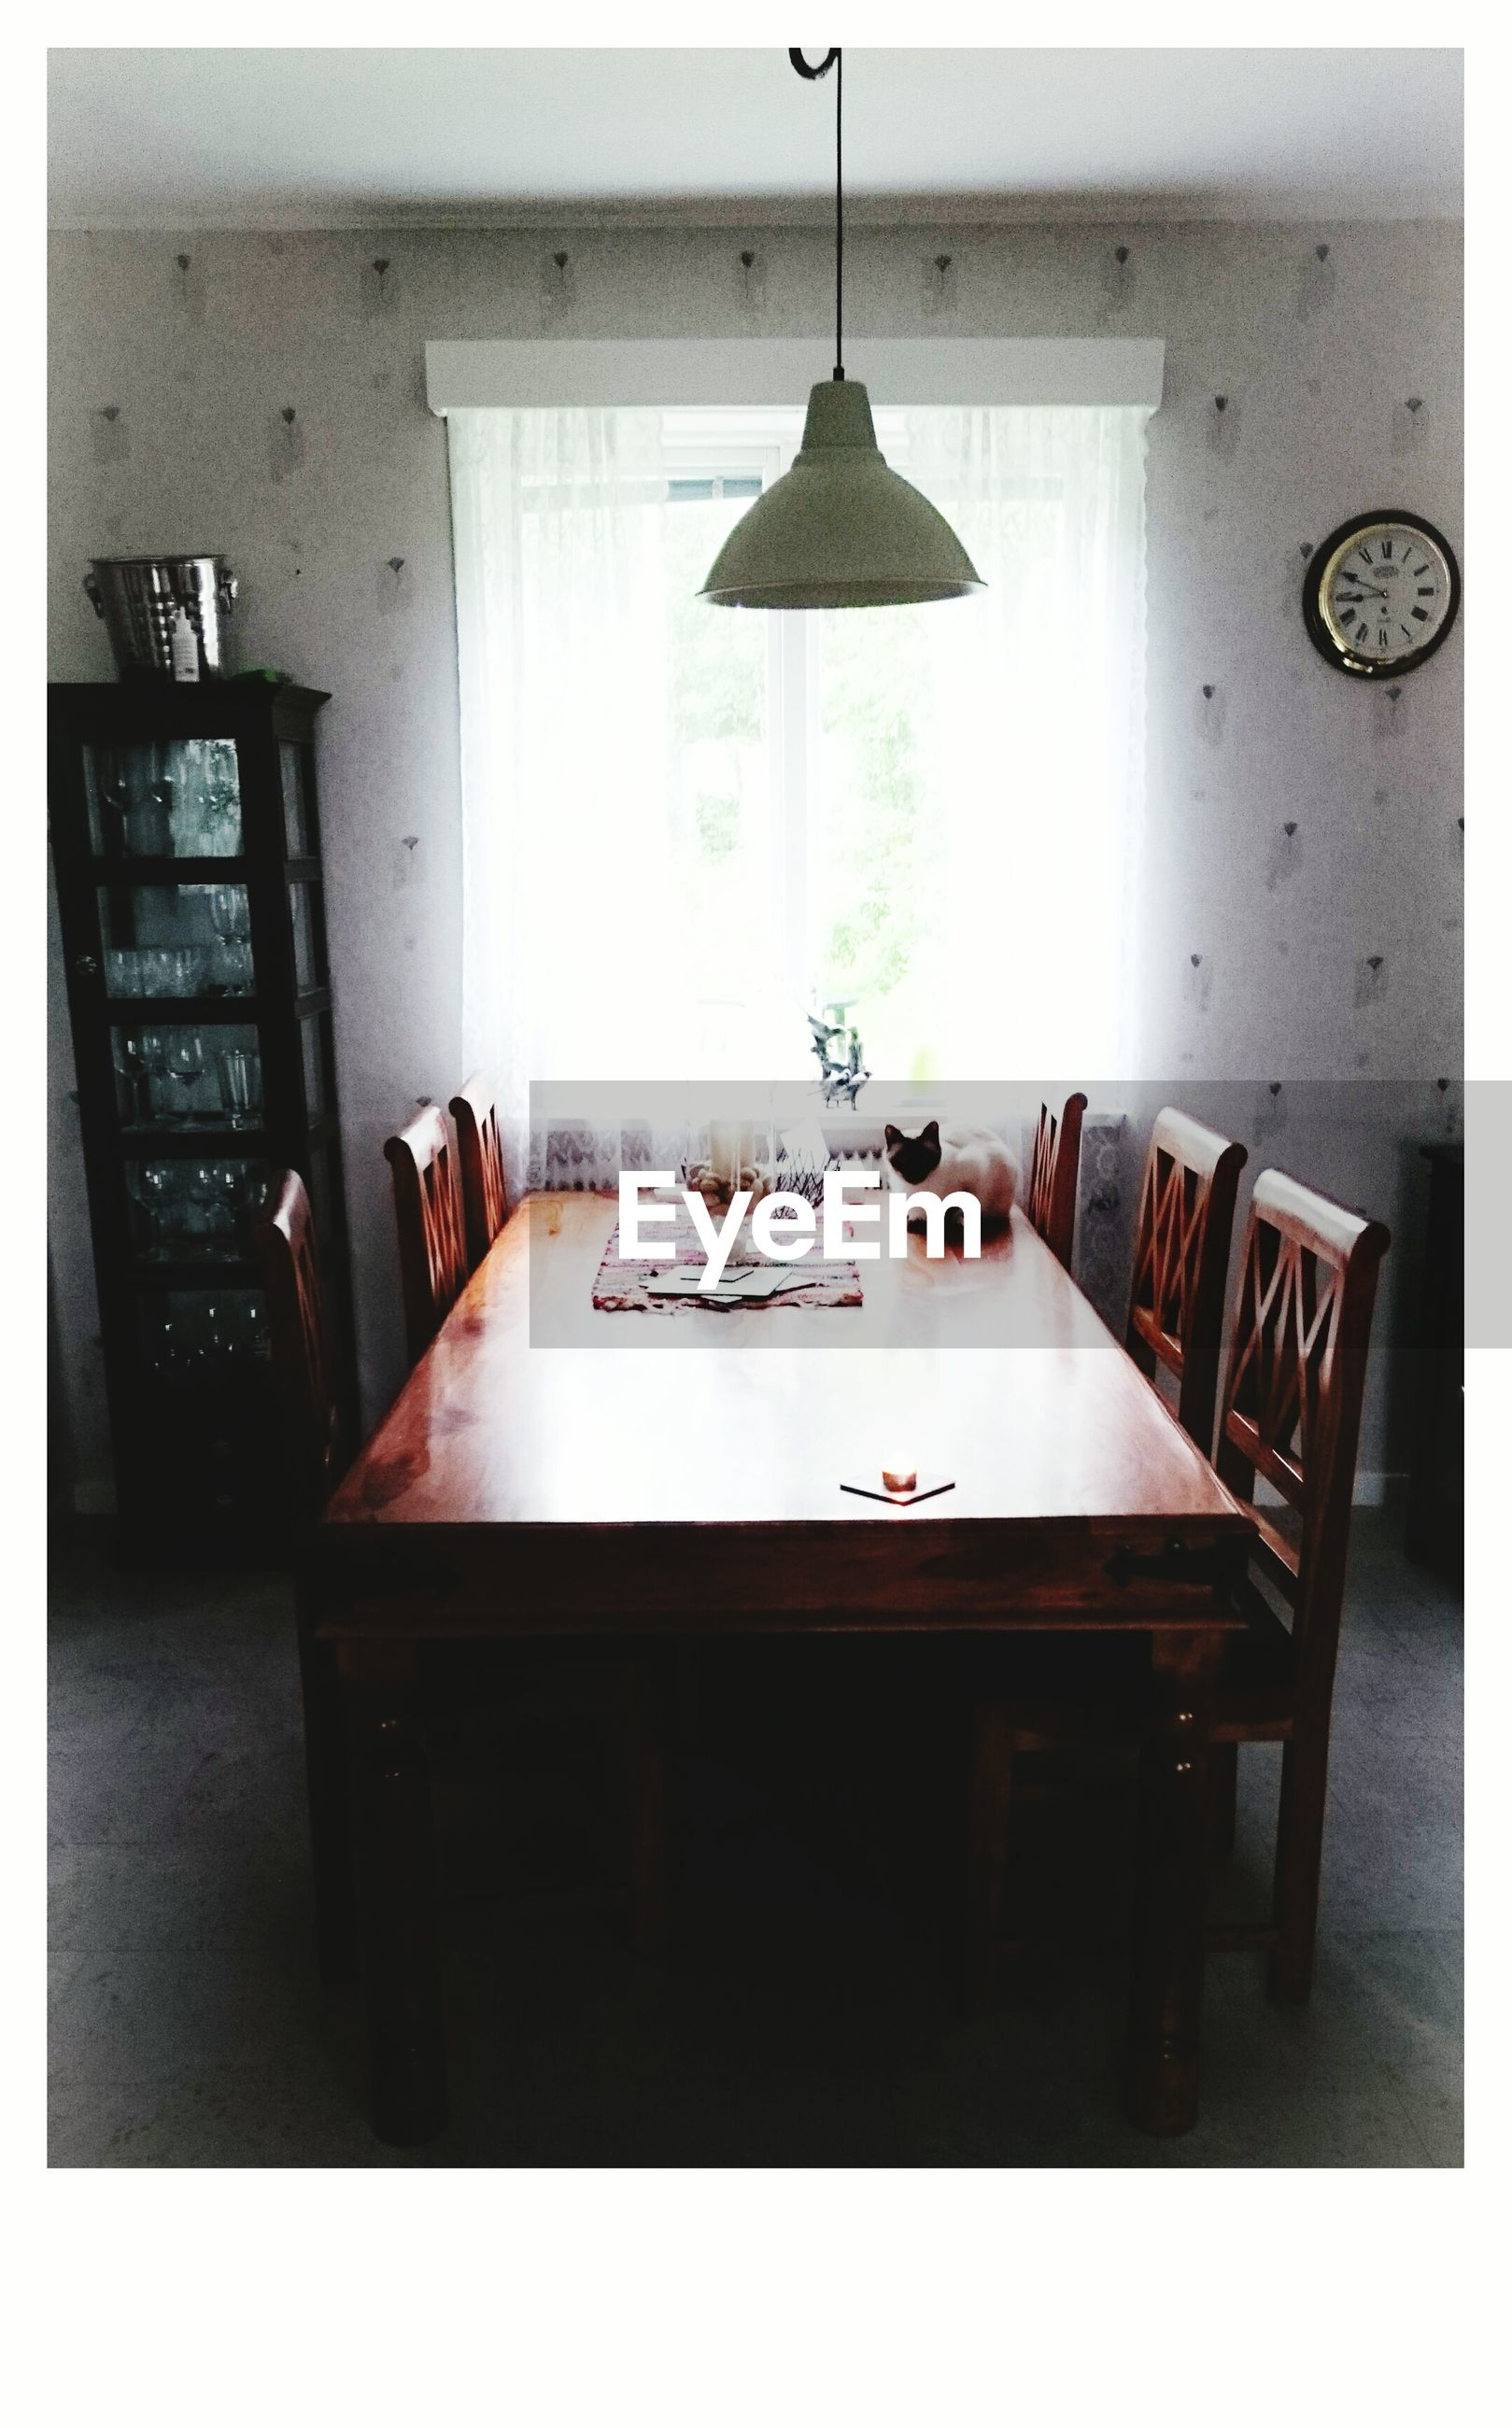 indoors, table, transfer print, chair, absence, empty, home interior, auto post production filter, lighting equipment, still life, furniture, no people, electric lamp, wall - building feature, architecture, restaurant, room, domestic room, picture frame, built structure